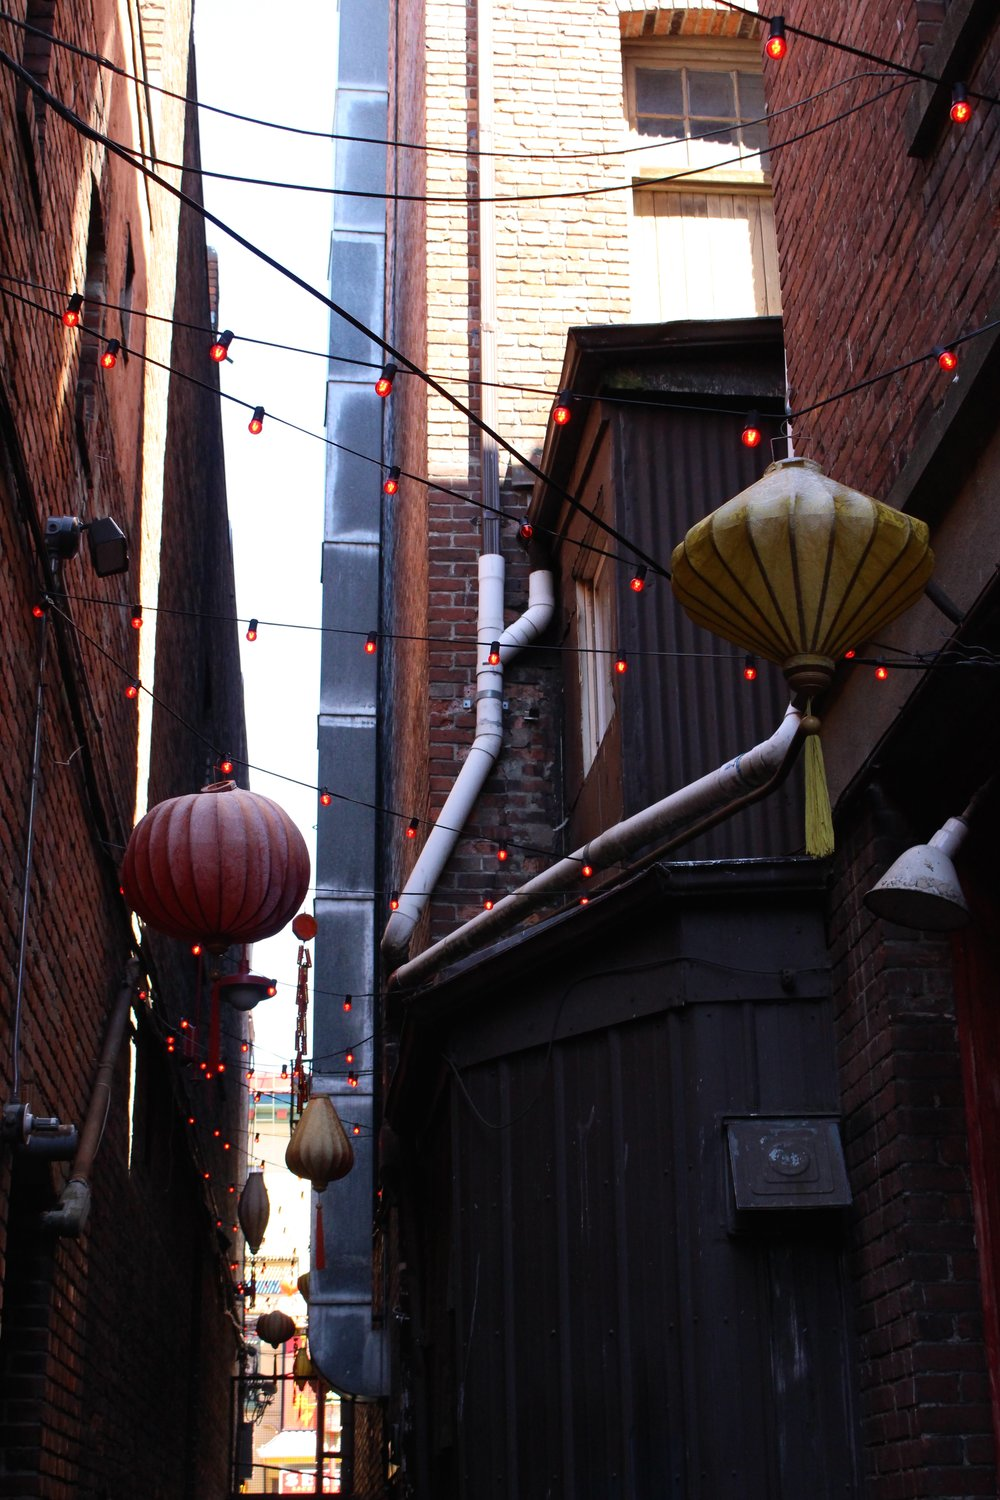 The lanterns of Fan Tan Alley